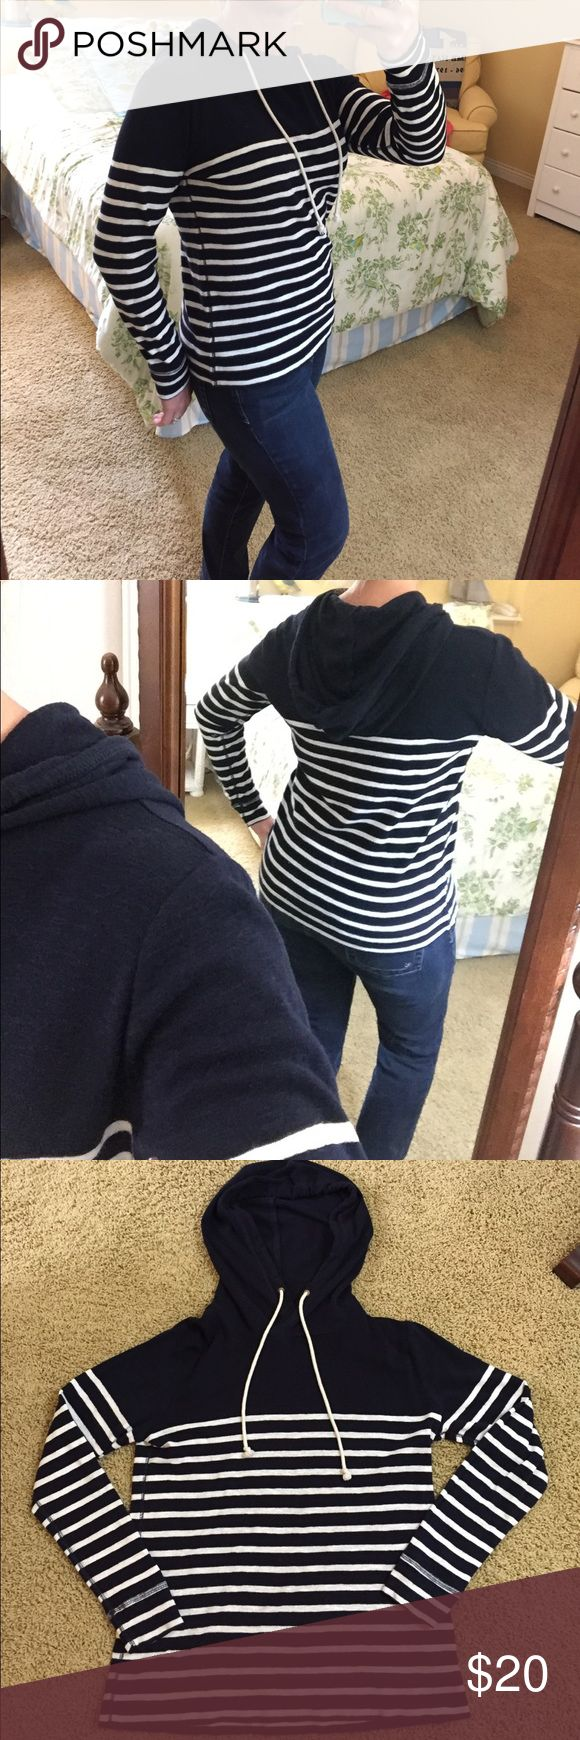 J Crew Nautical Hoodie EUC hoodie. Super soft and comfy! Size small probably best fit on size 8/10. Happy poshing! J. Crew Tops Sweatshirts & Hoodies